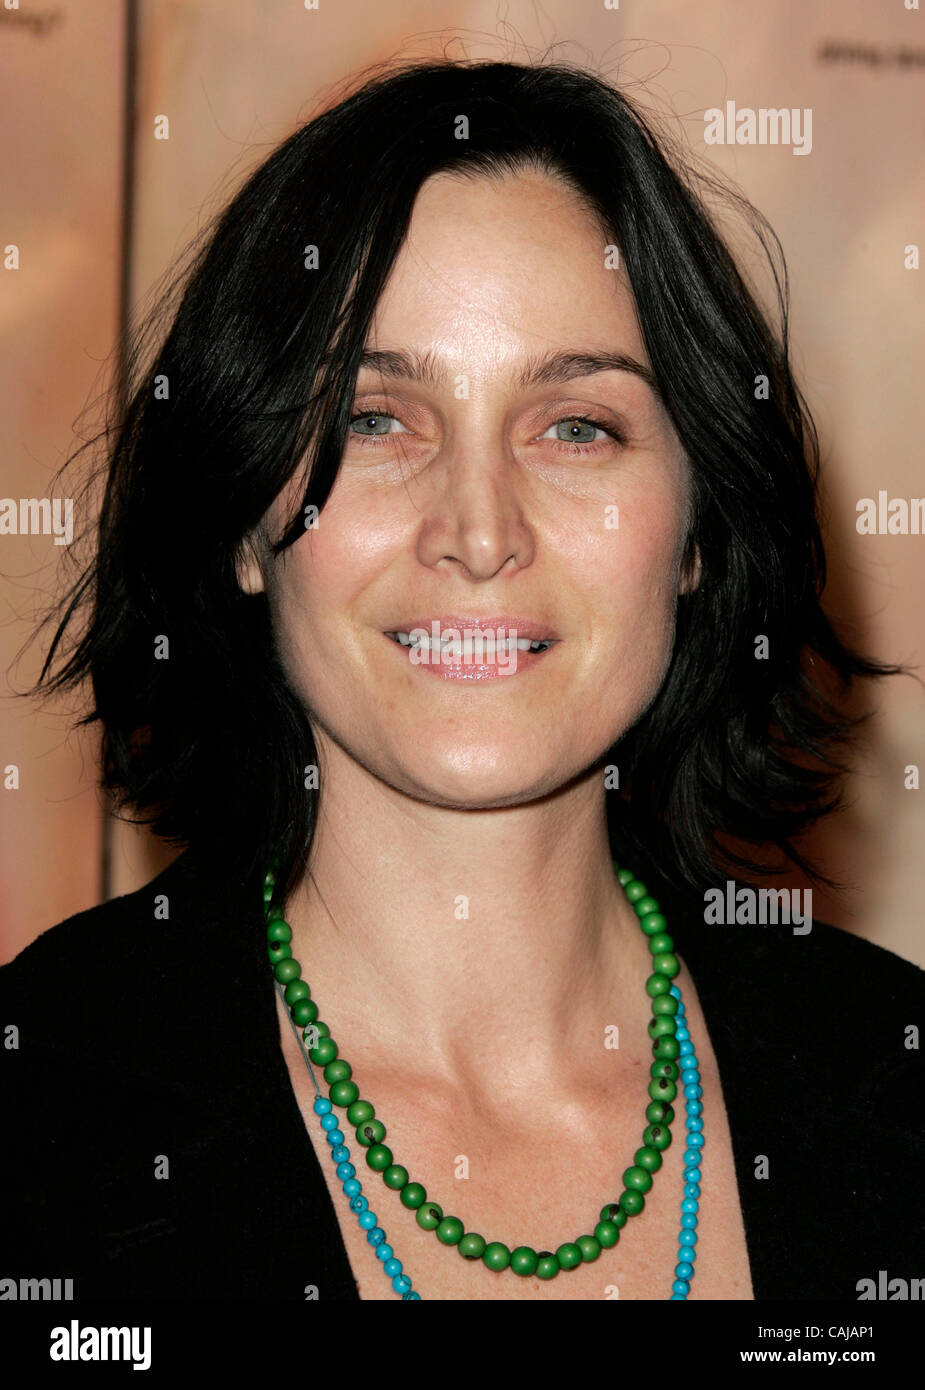 Carrie-Anne Moss Nude Photos 17